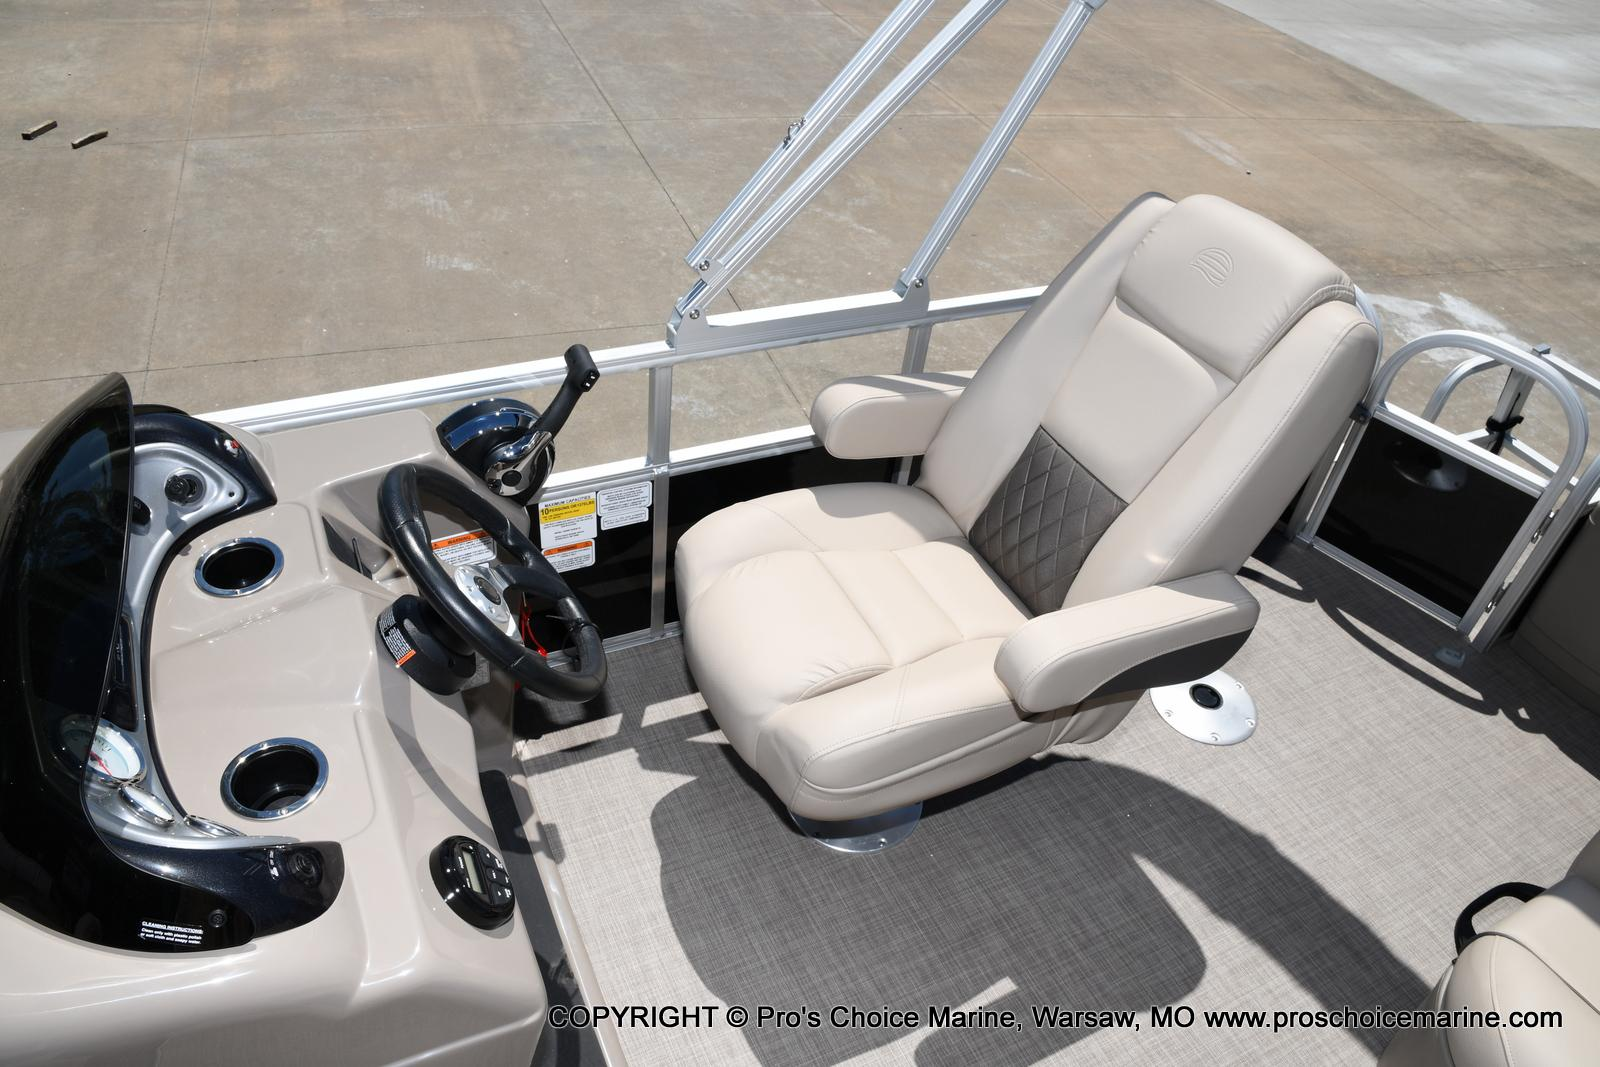 2021 Sun Tracker boat for sale, model of the boat is Fishin' Barge 20 DLX & Image # 8 of 50